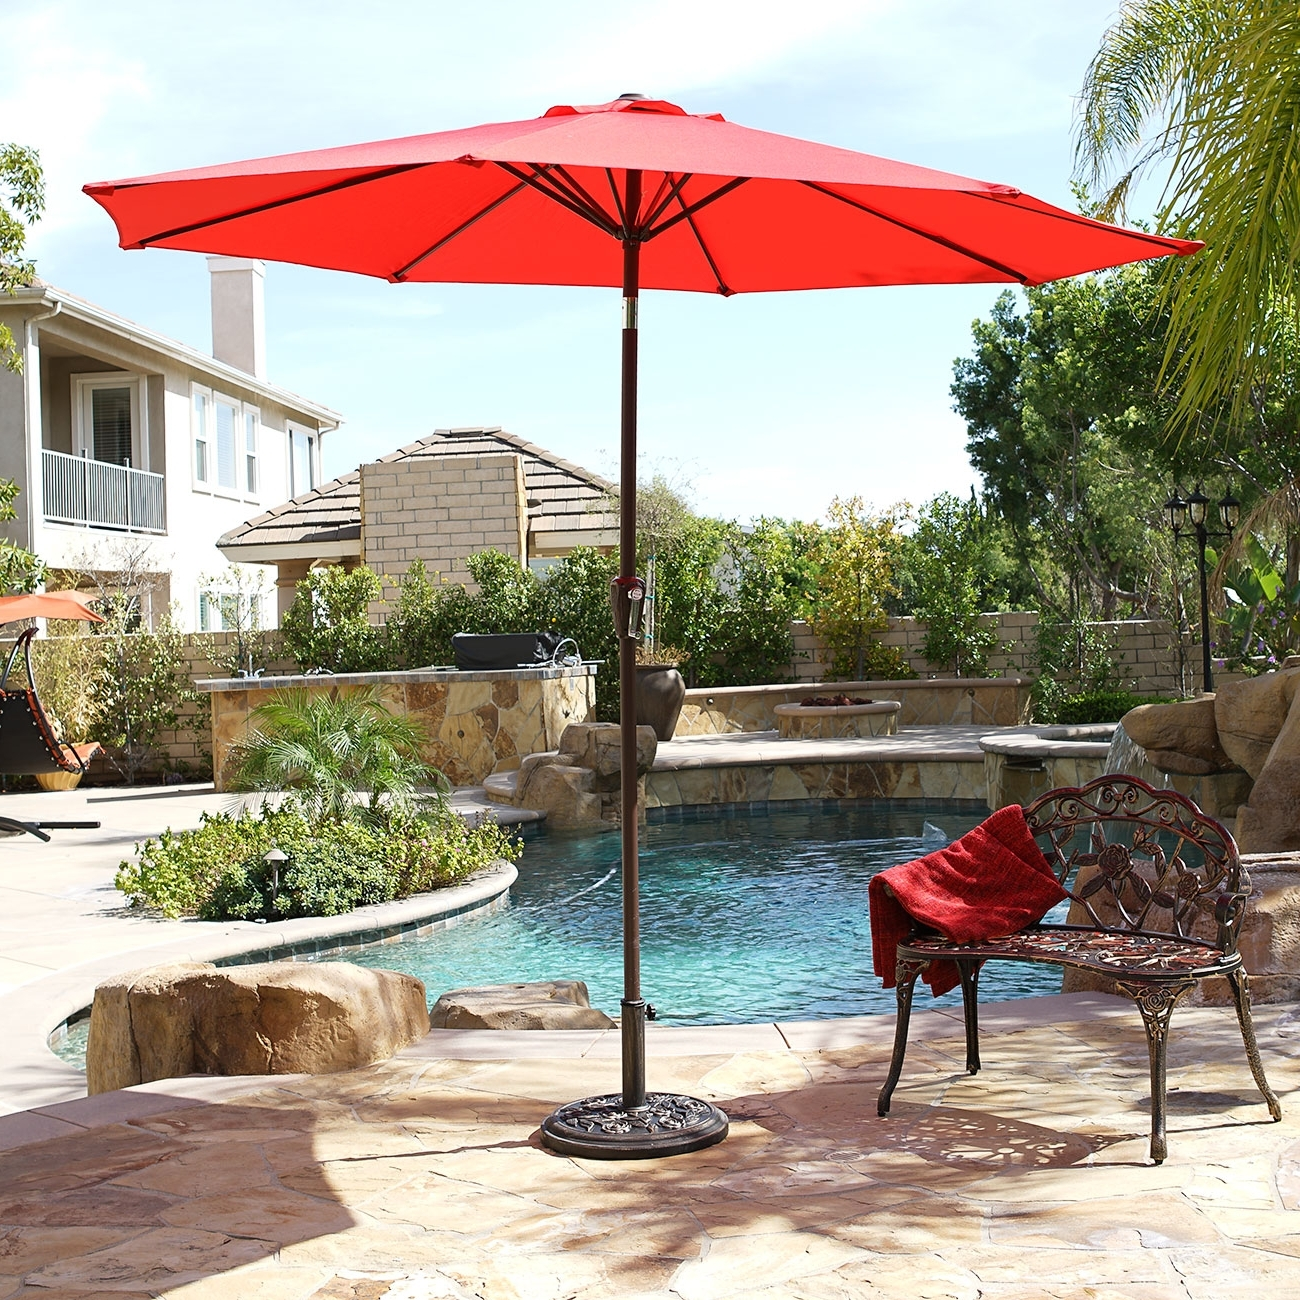 9' Ft Steel Outdoor Patio Umbrella Market Yard Beach W/ Crank Tilt 6 Throughout 2018 9 Ft Patio Umbrellas (View 9 of 20)